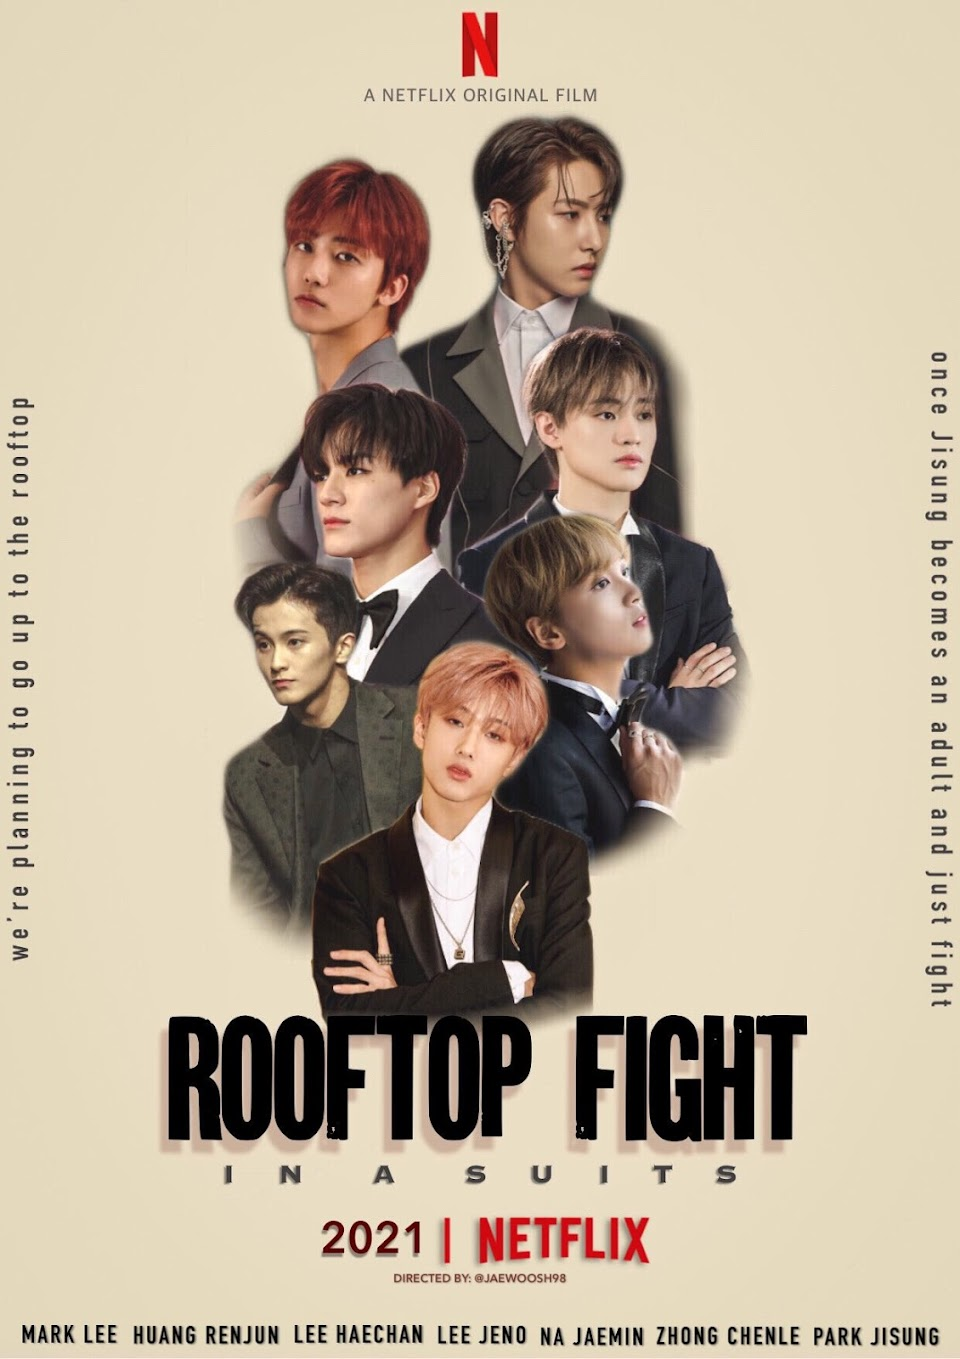 nct dream rooftop fight netflix @jaewoosh98